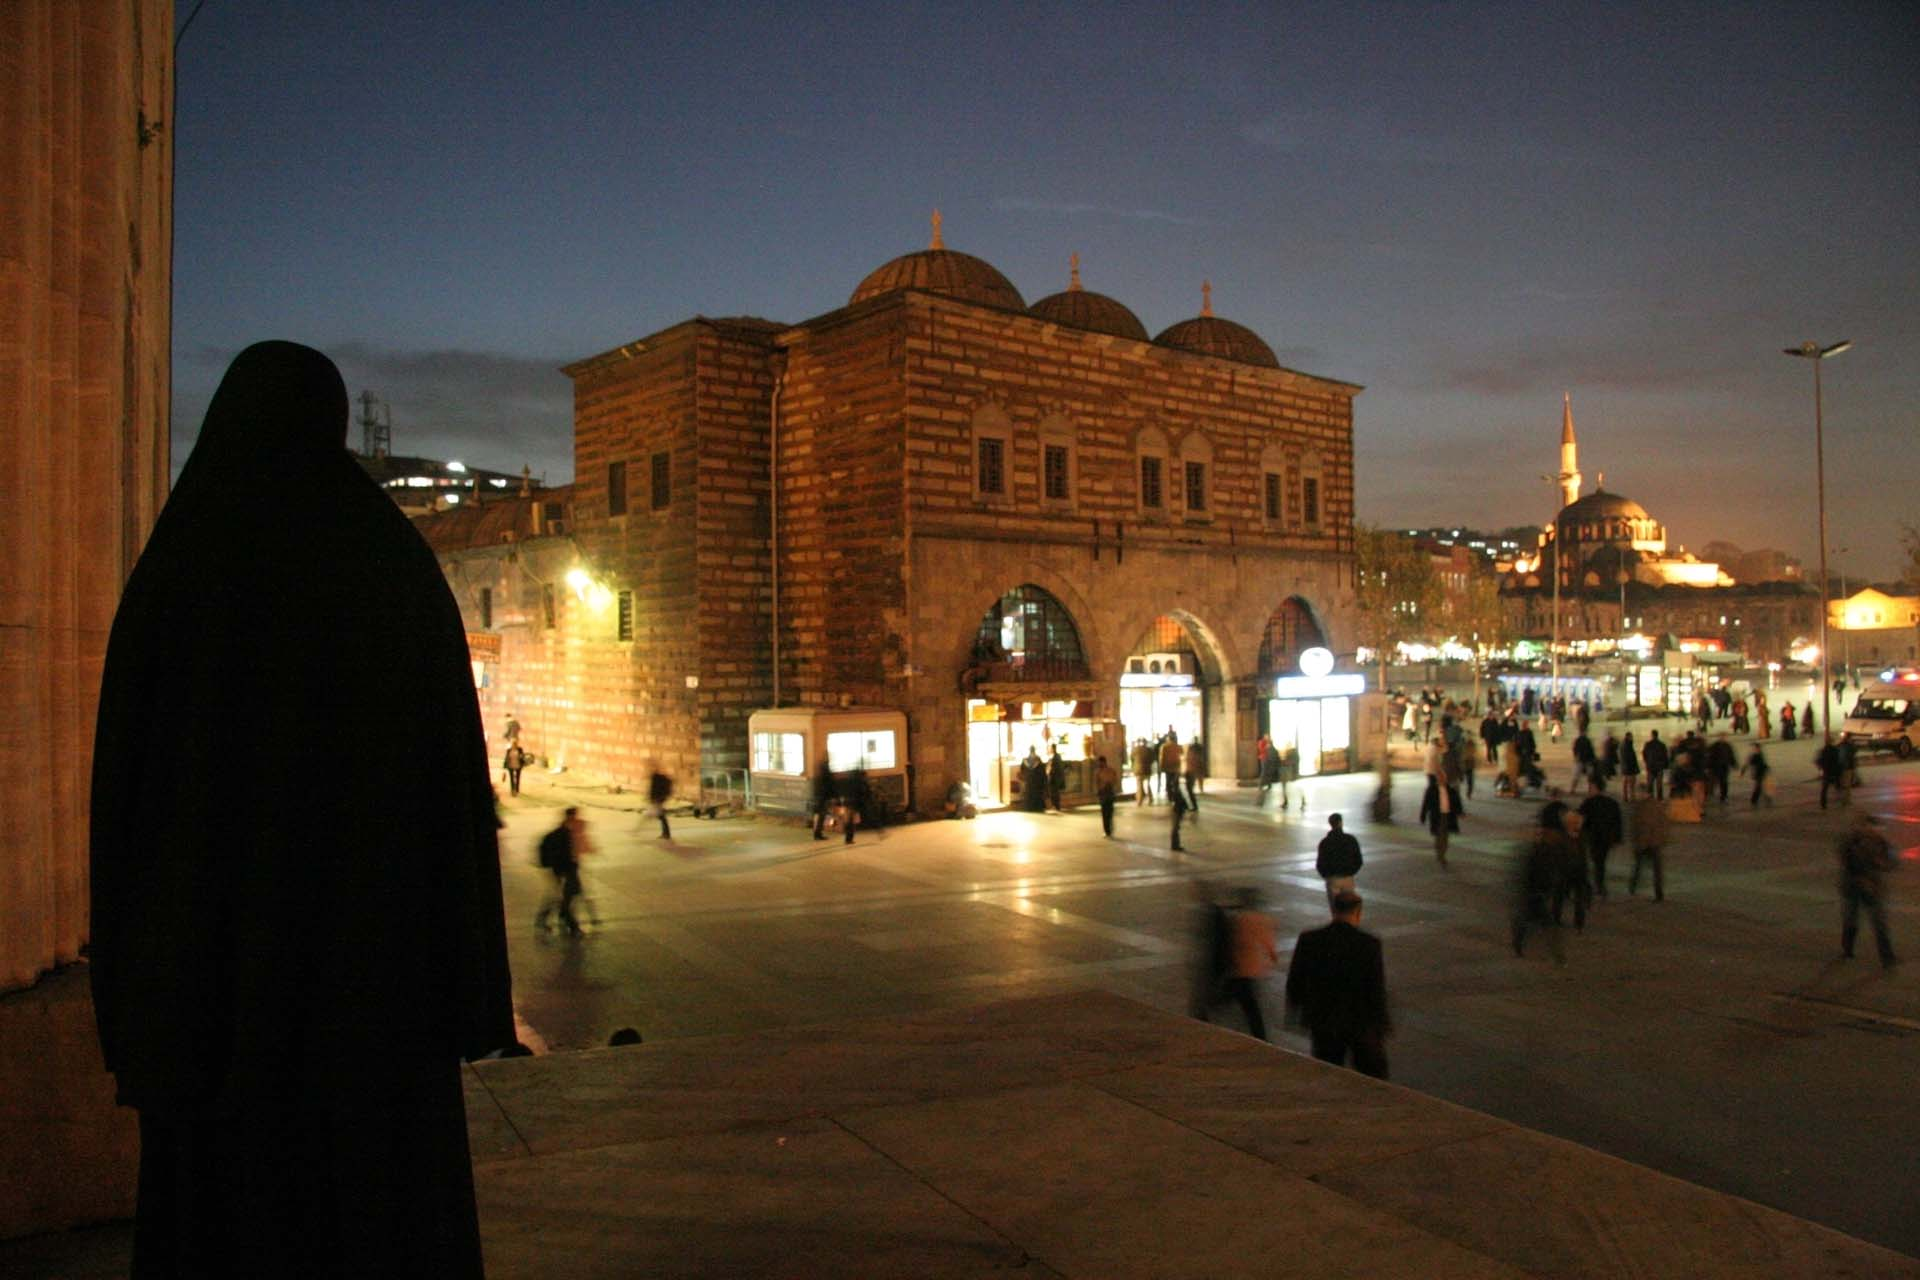 Entrance of the Yen Camii (New Mosque) in Eminönü, next to the Egyptian Bazar